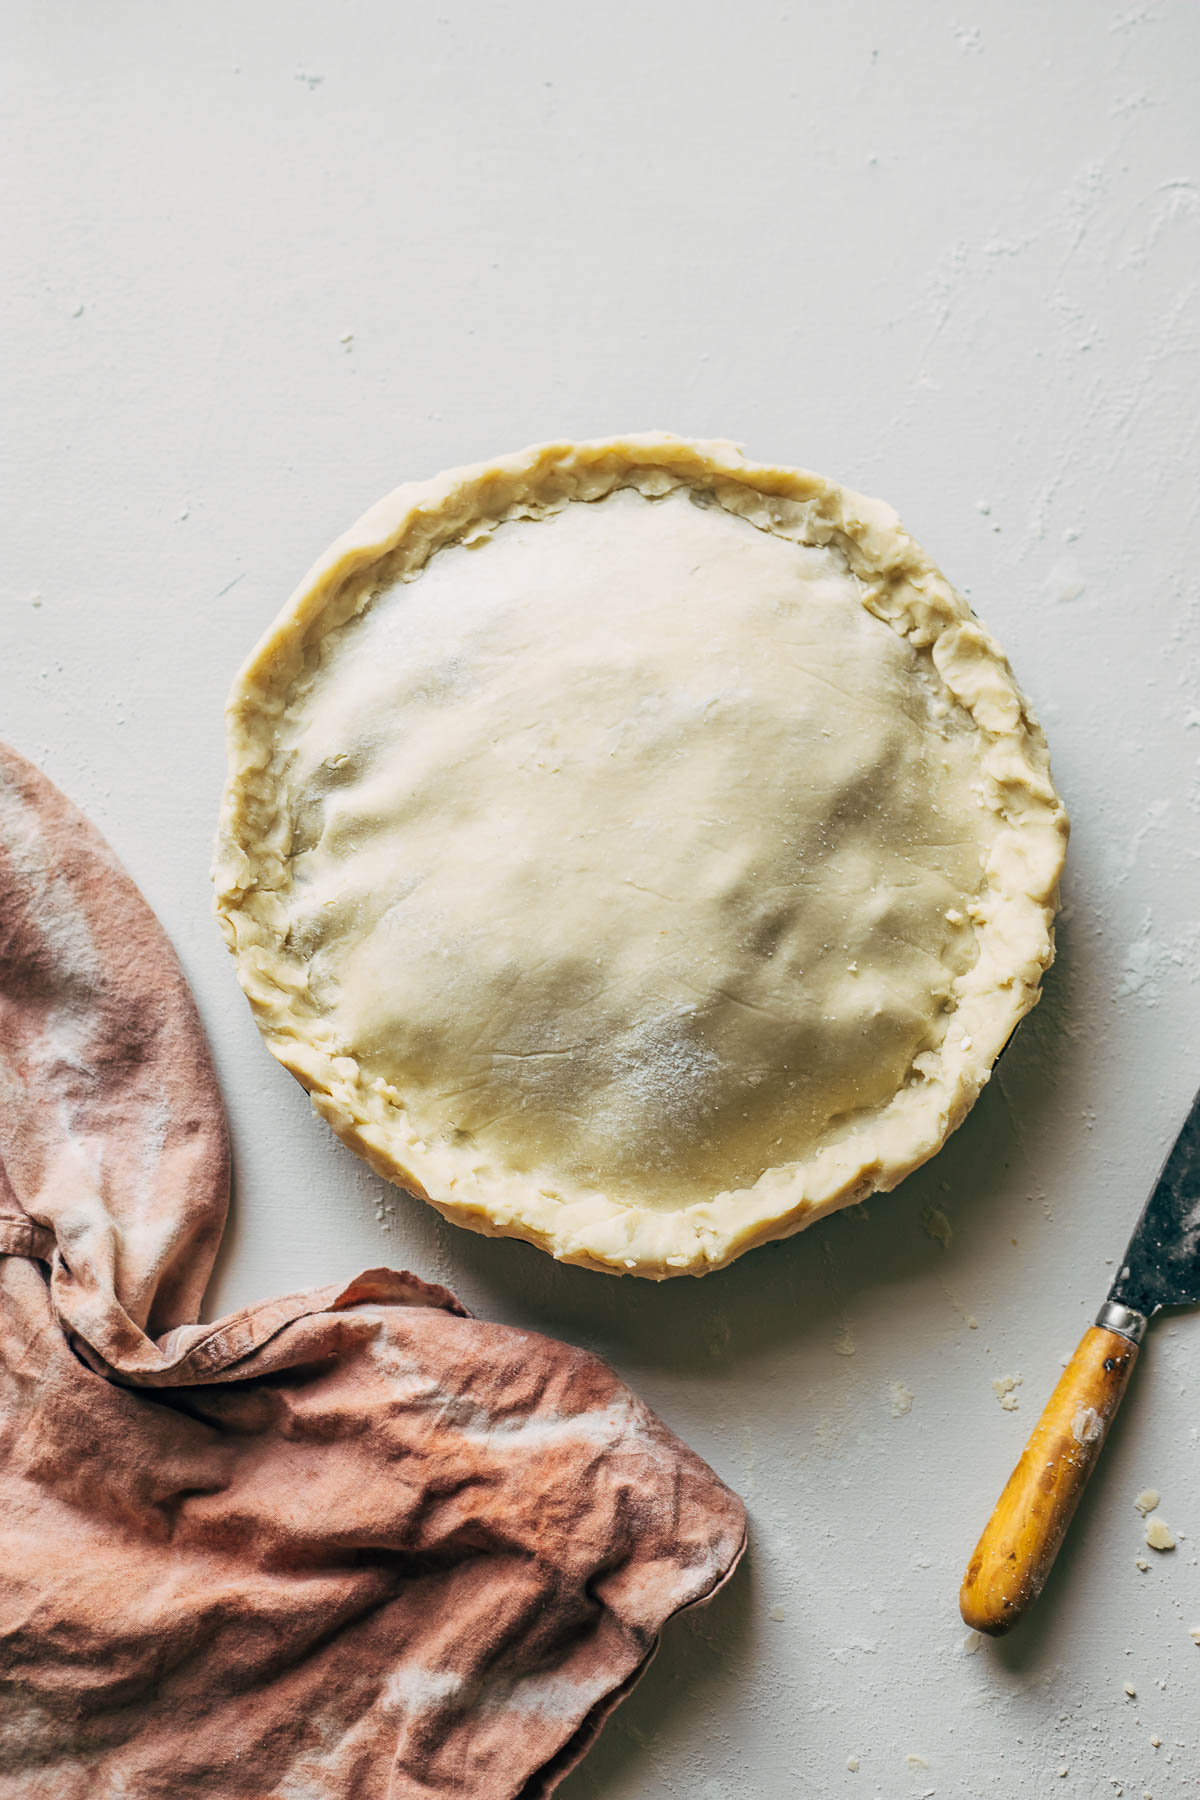 An unbaked pie dough before the edges have been crimped on a white surface with a knife and a pink linen nearby.